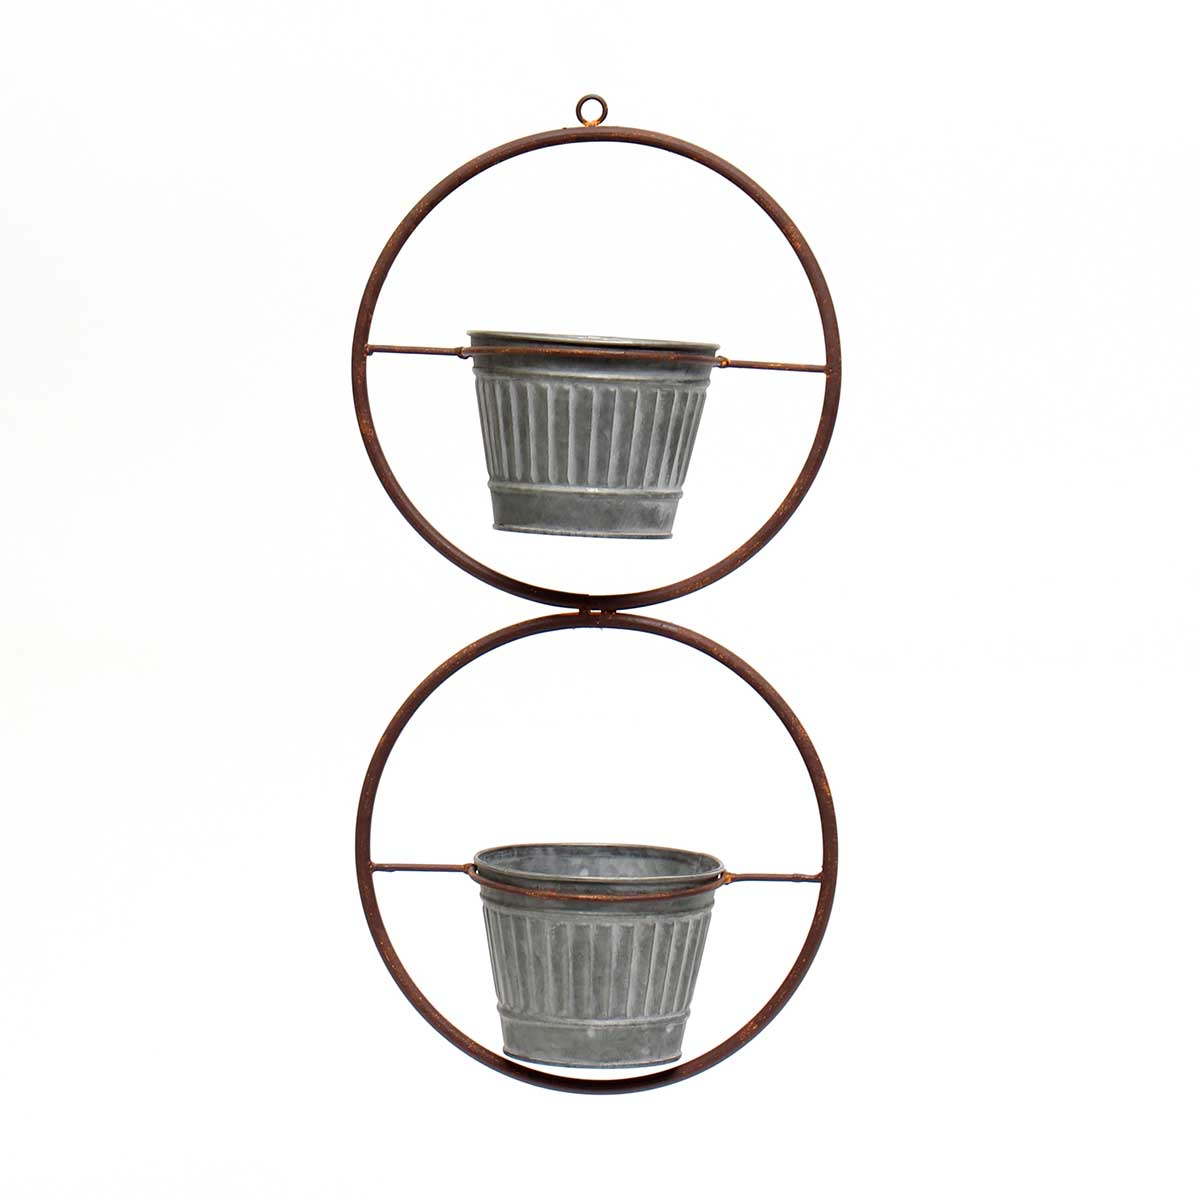 IN BLOOM METAL HANGING DOUBLE CIRCLES WITH 2 BUCKETS